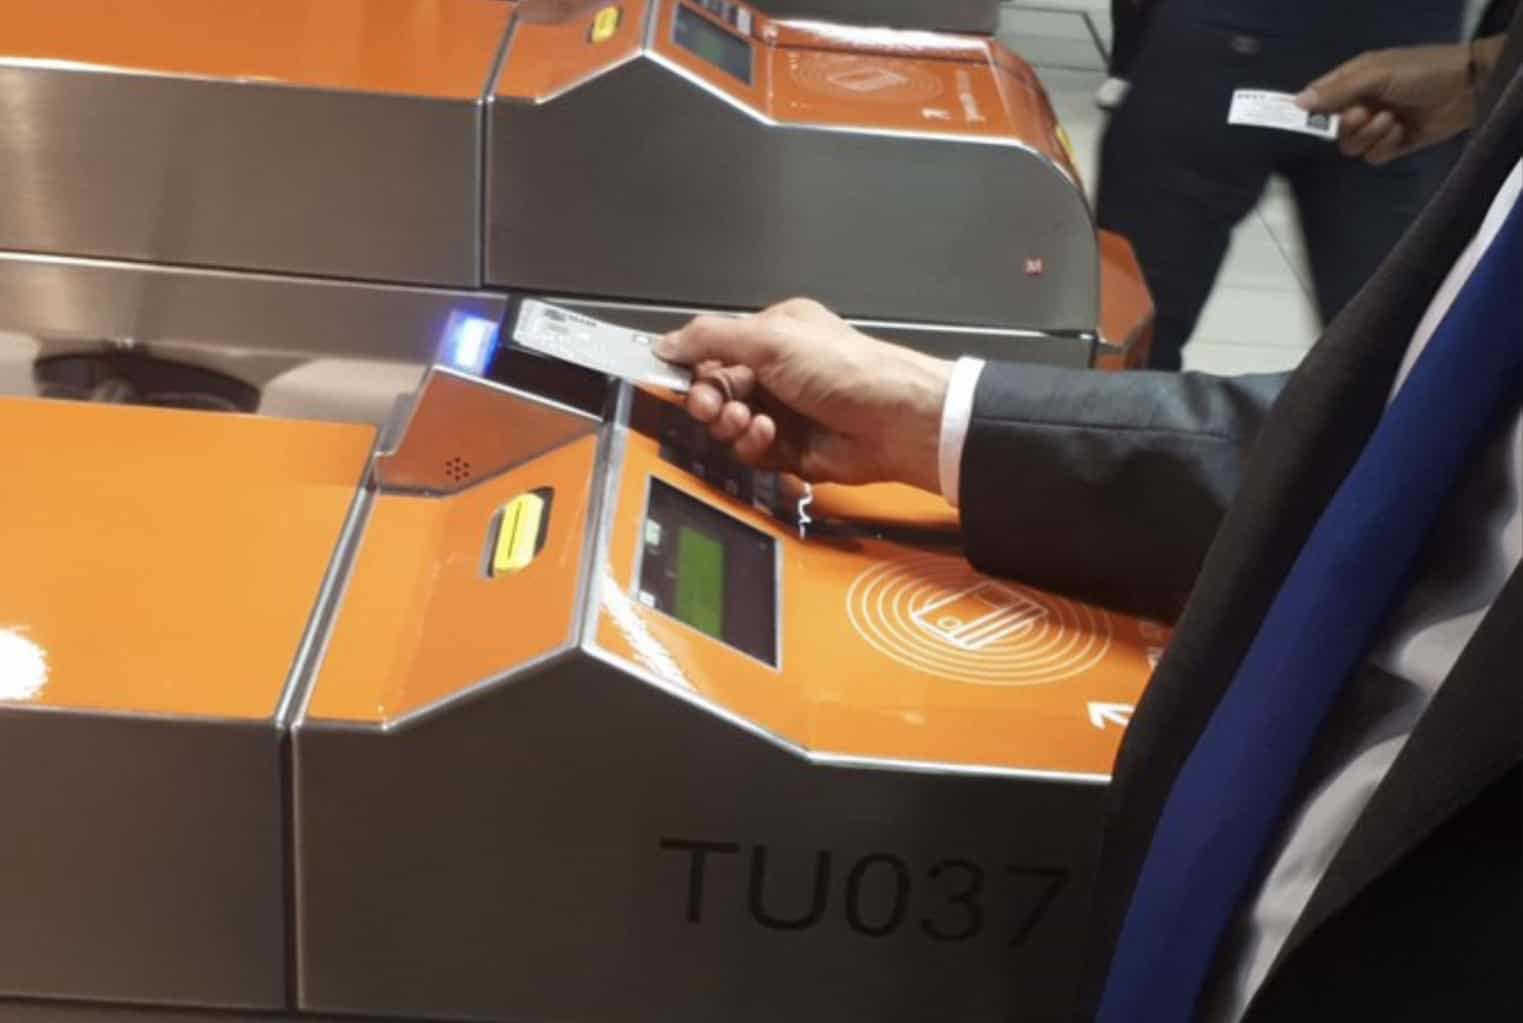 Apple Pay Milan subway